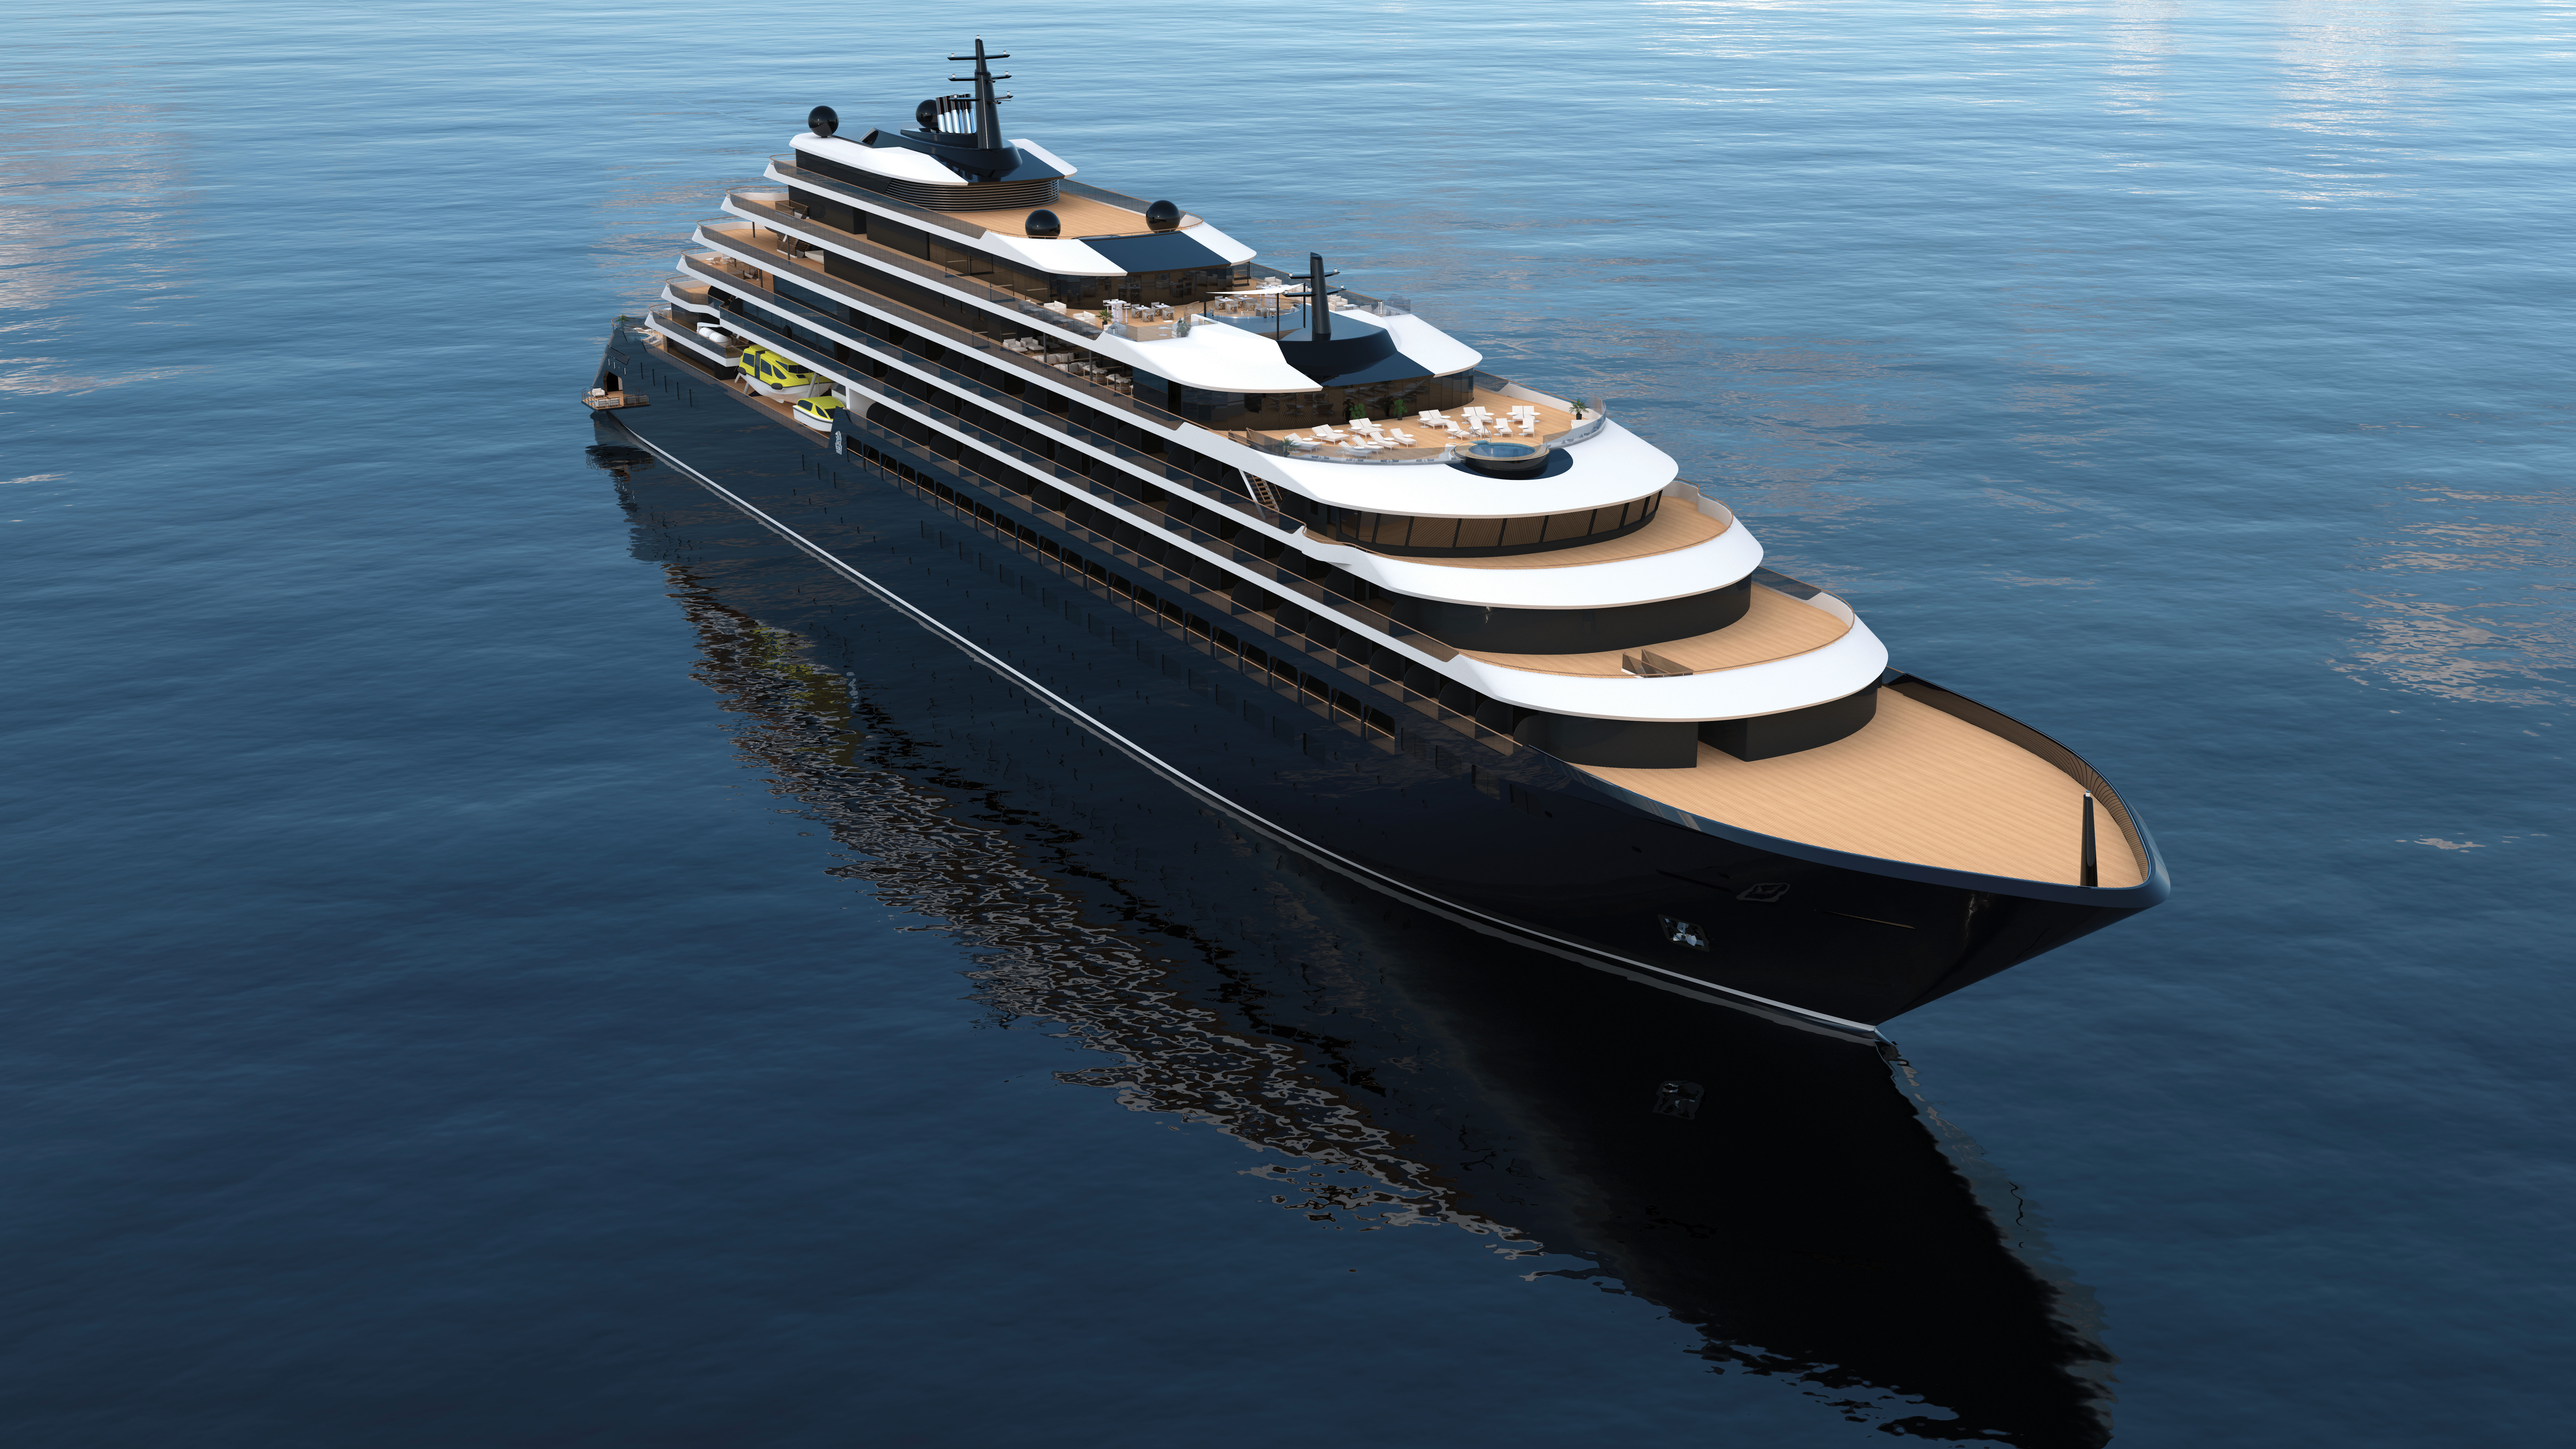 A rendering of the first ship in the Ritz-Carlton Yacht Collection